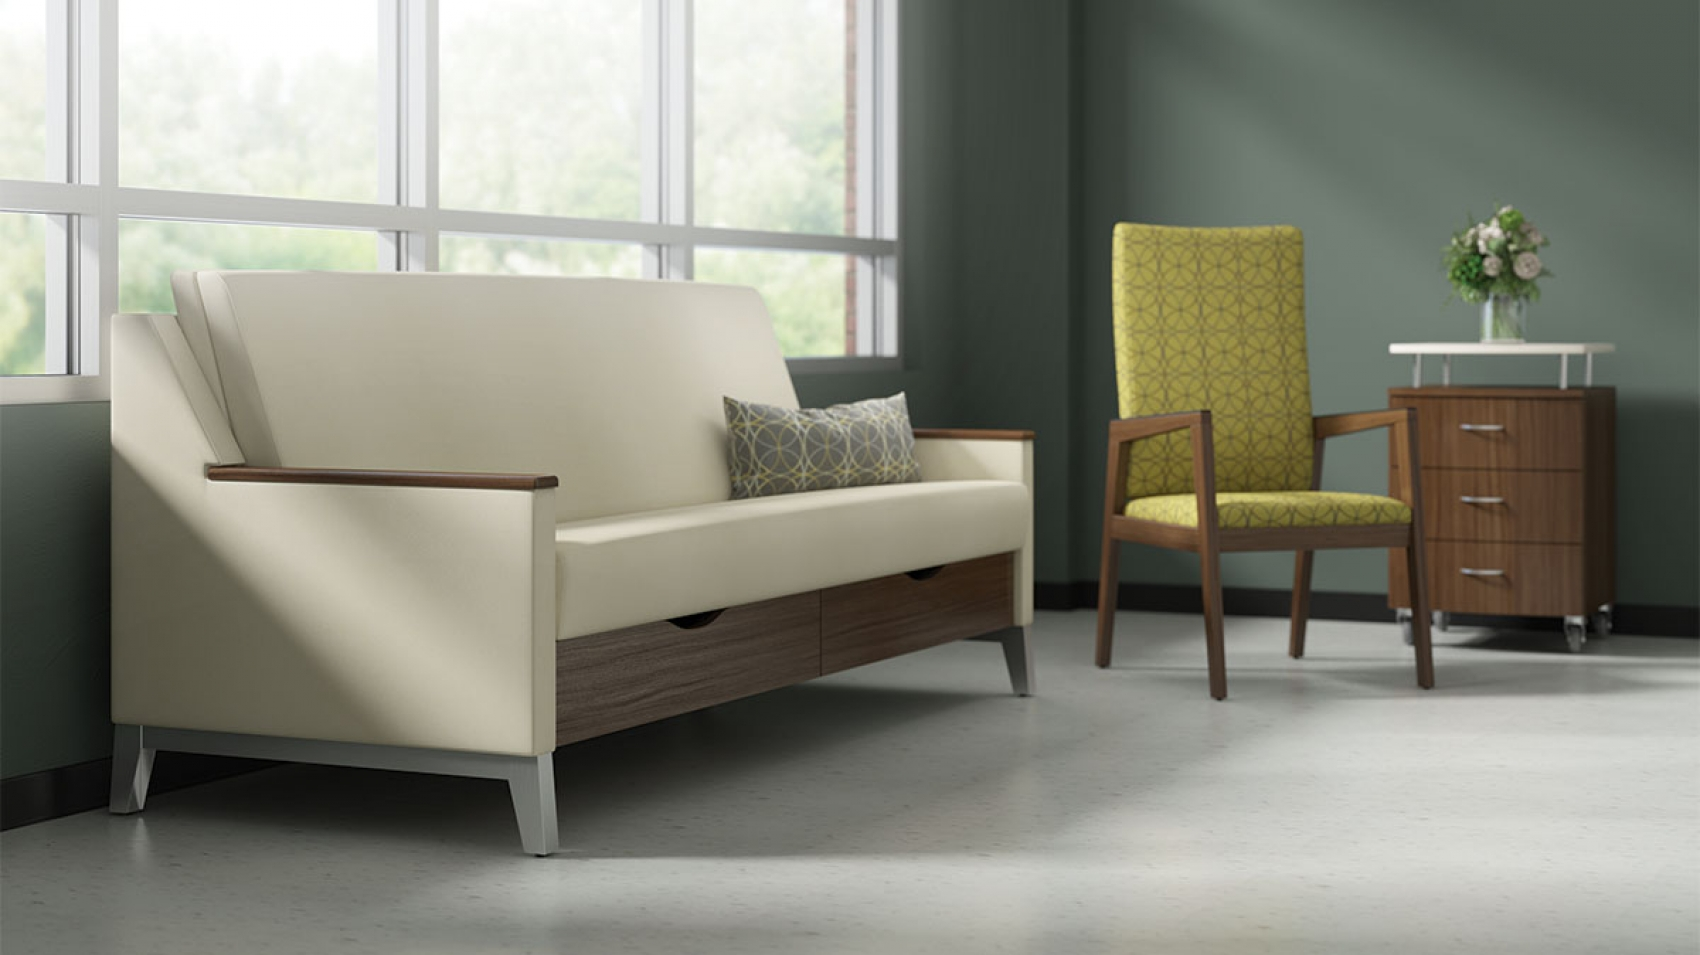 Incroyable Reverie Is A Sleepover Sofa For Healthcare Spaces That Offers Supreme Form  And Function. Thoughtfully Designed With Multiple Arm Styles, ...